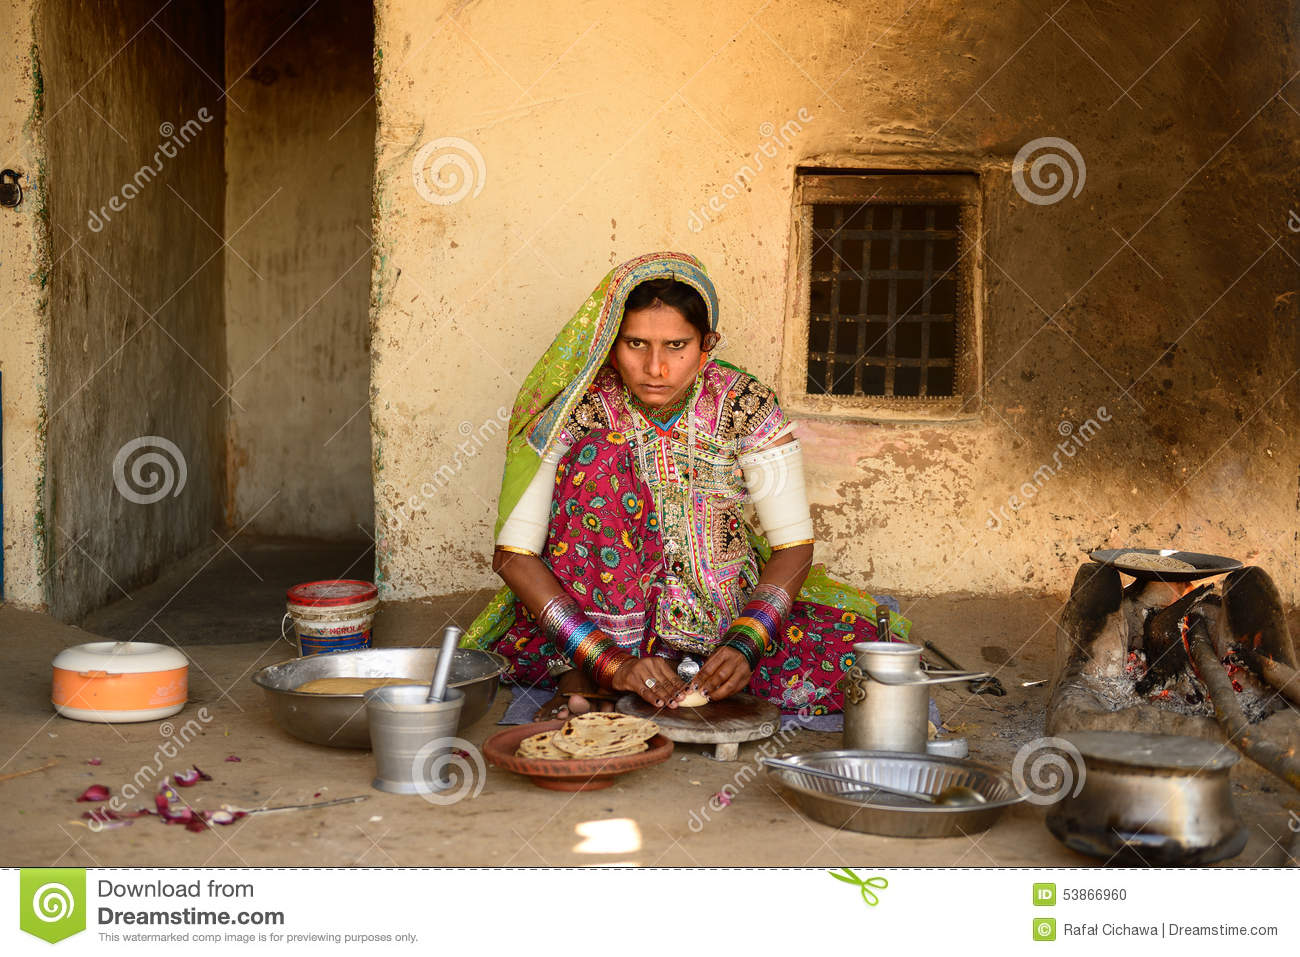 Simple living in the village on the desert in gujarat for Minimalist lifestyle india